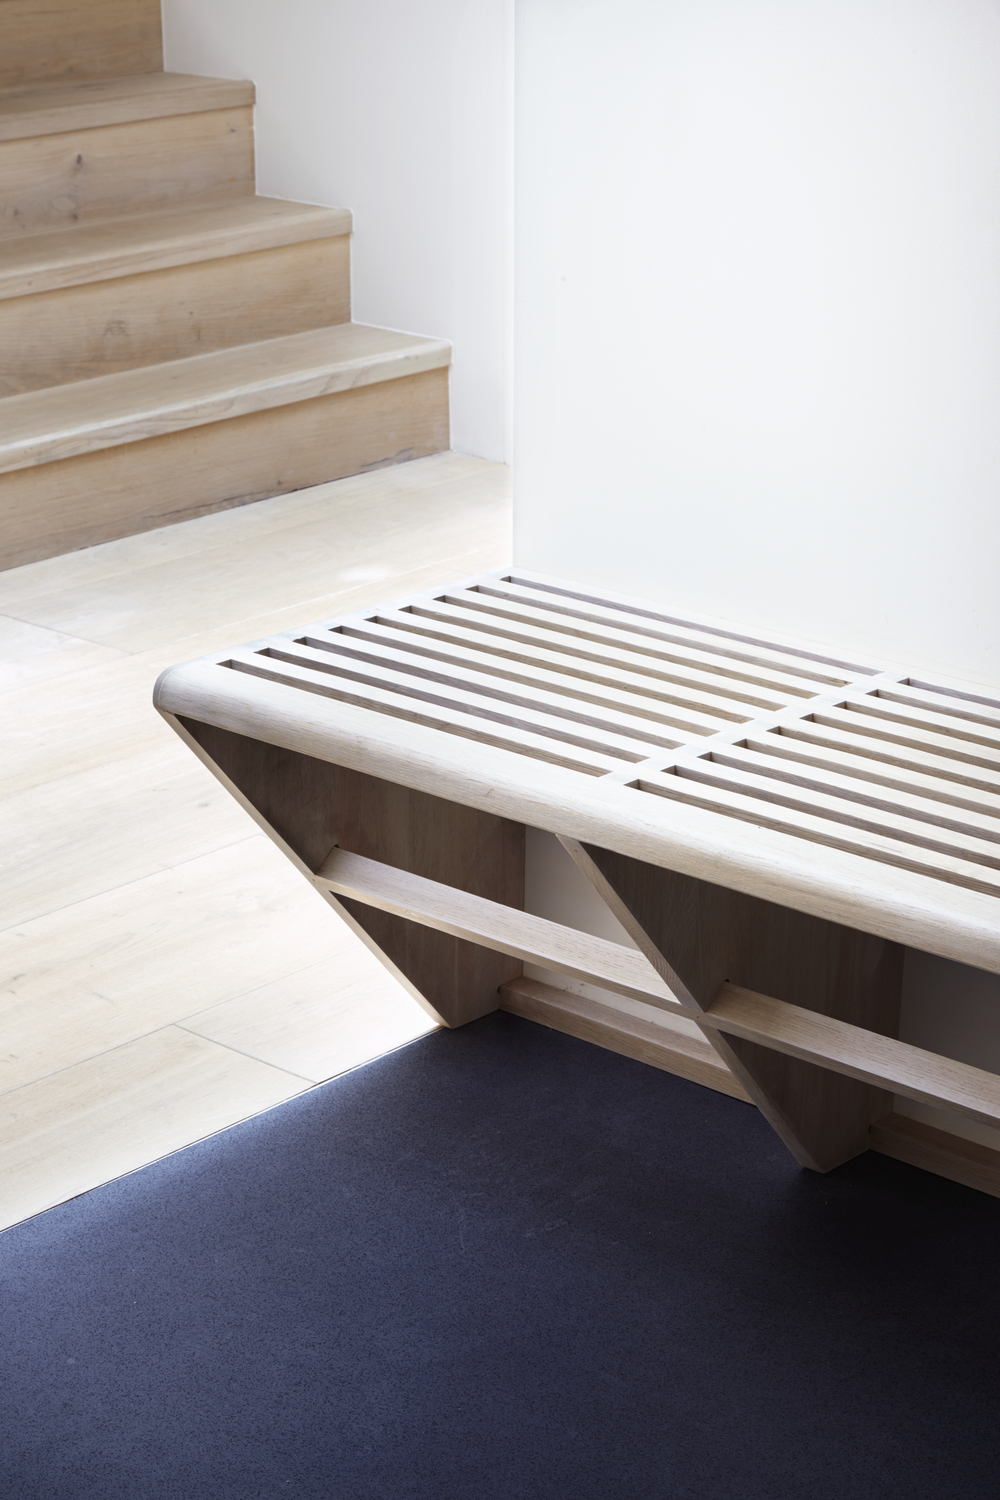 Bespoke Bench Unit - Photography - Jack Hobhouse